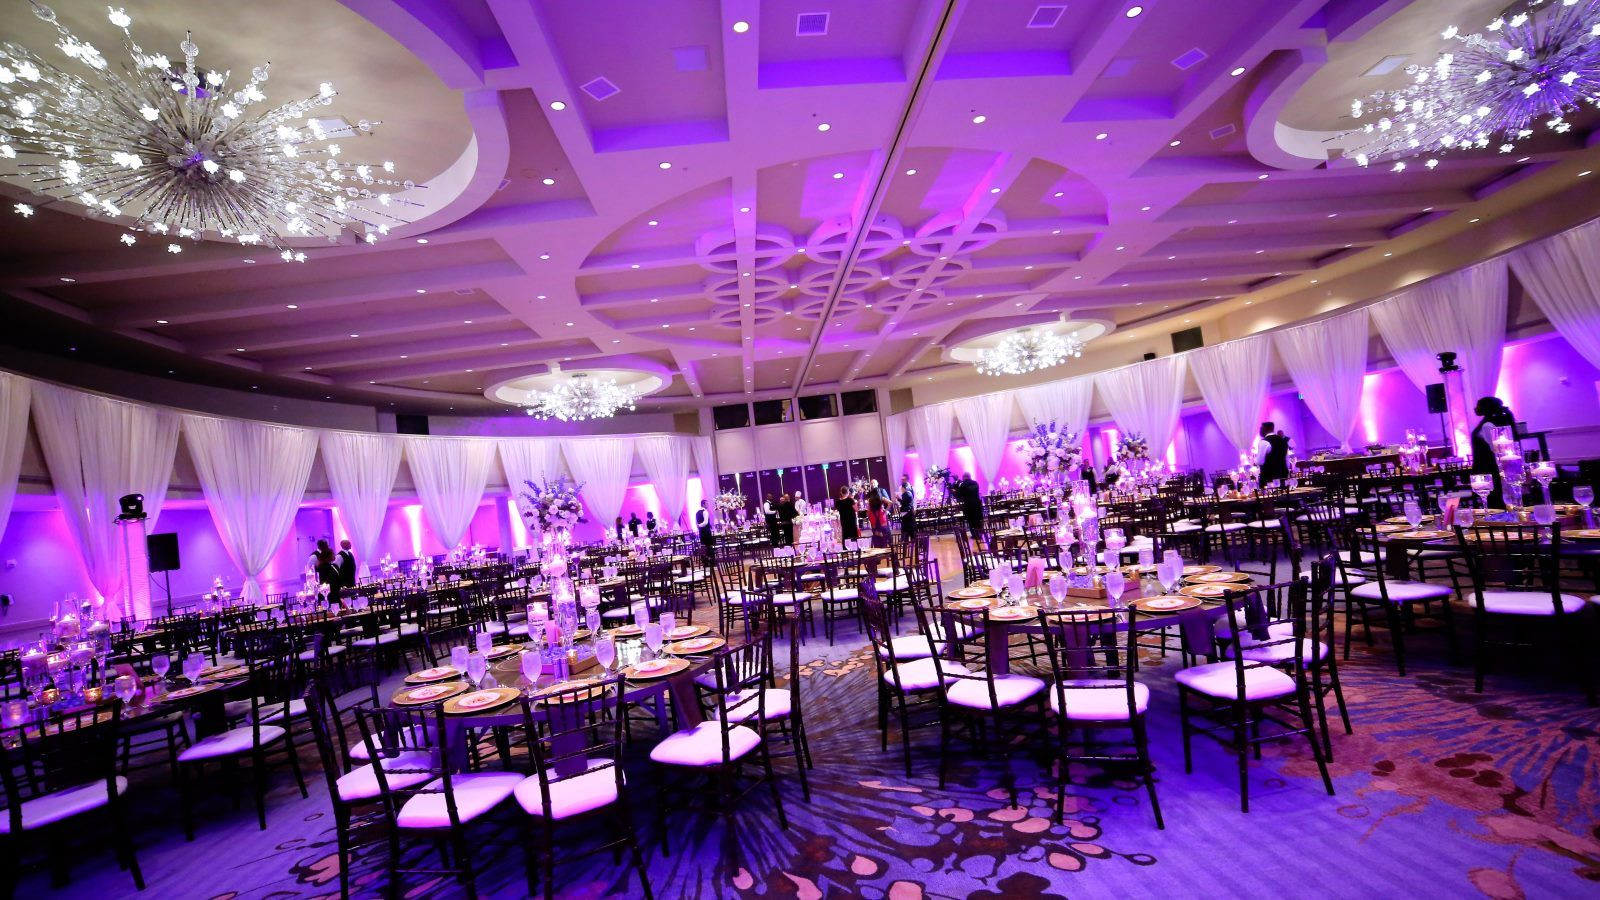 Atlanta wedding venues the westin peachtree plaza atlanta the westin peachtree plaza wedding venues junglespirit Image collections